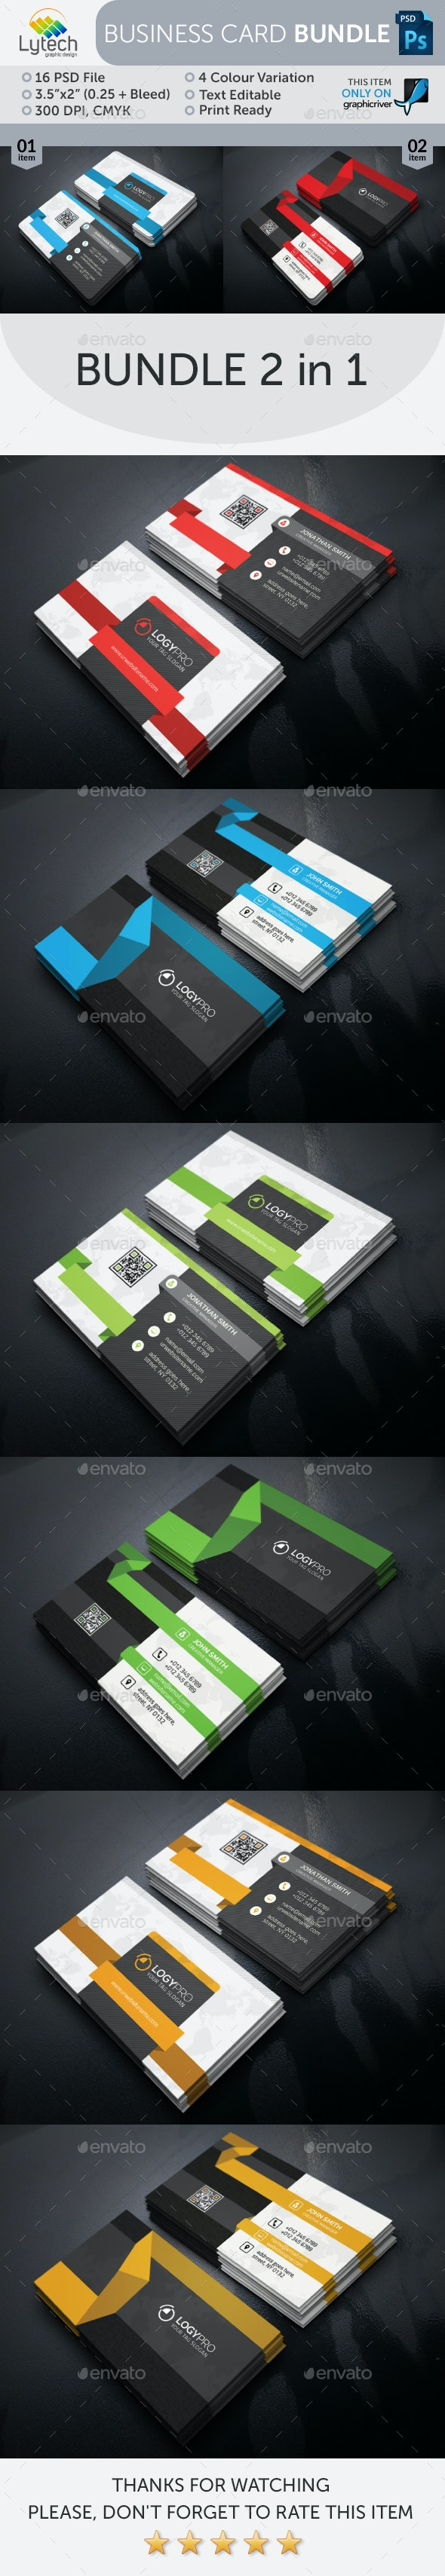 Corporate Business Card Bundle (2 in 1) - Business Cards Print Templates